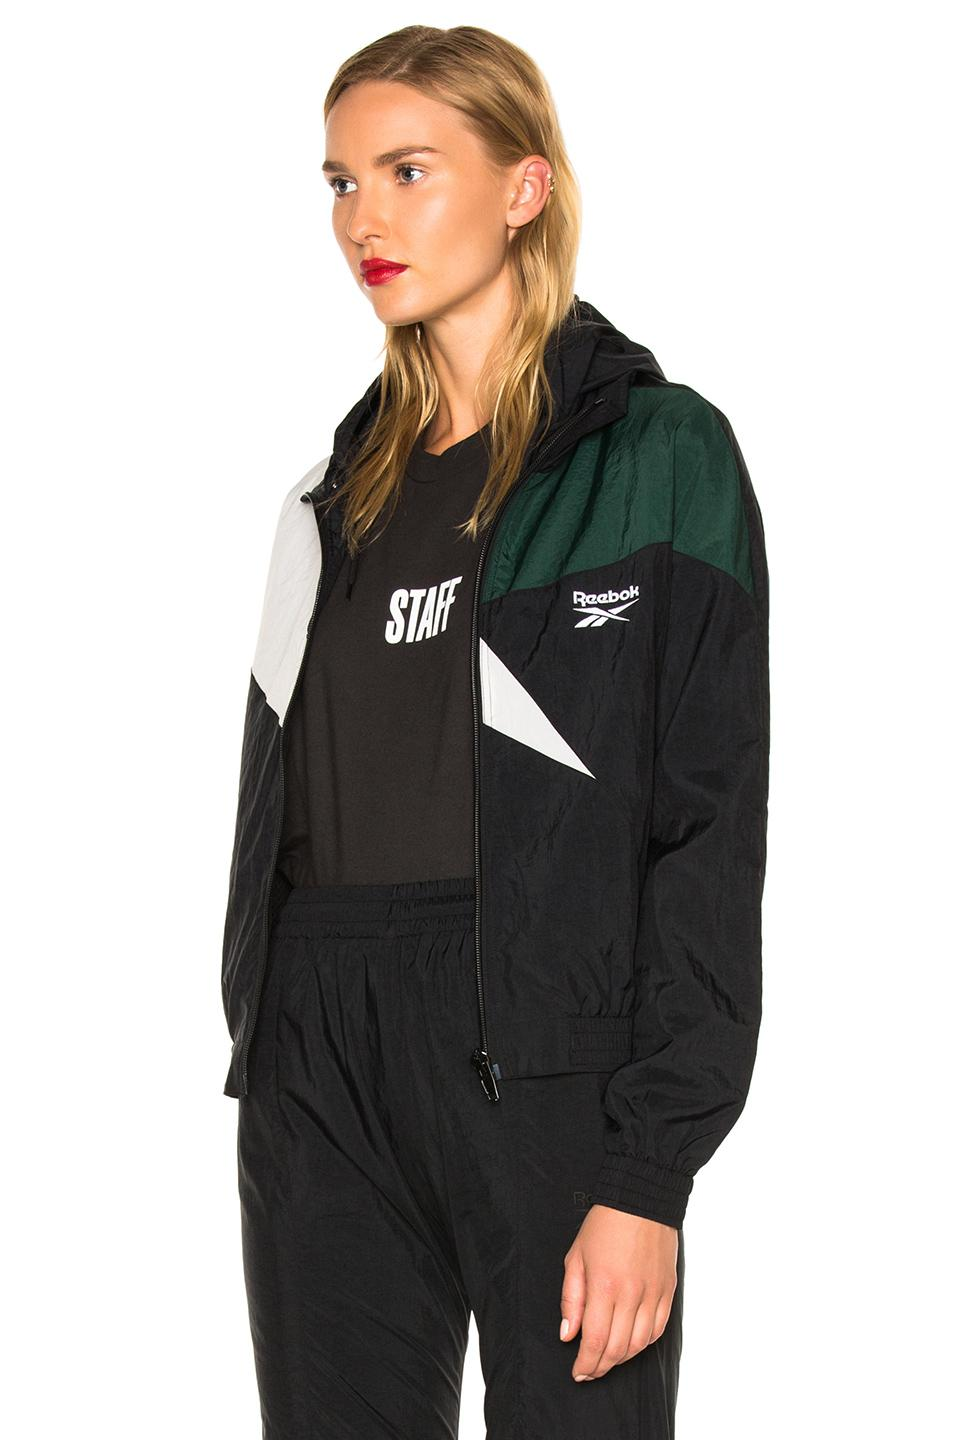 Lyst Vetements X Reebok Fitted Track Jacket In Black For Men